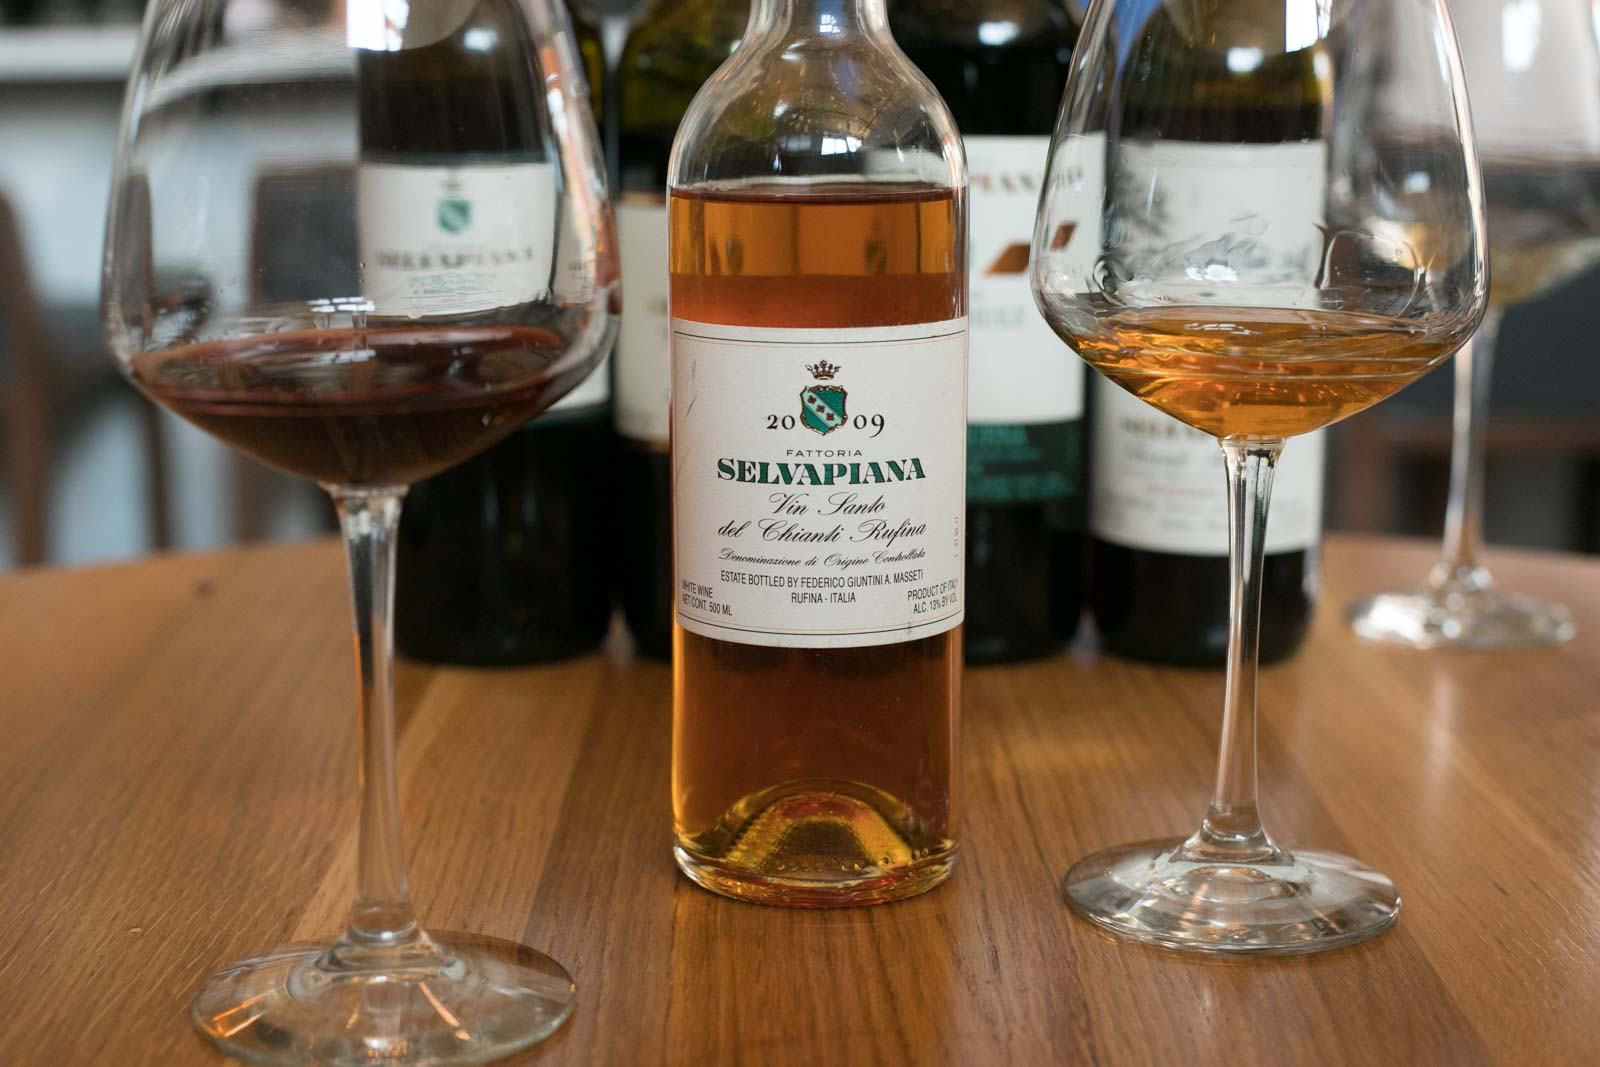 Selvapiana's exquisite Vin Santo. ©Kevin Day / Opening a Bottle